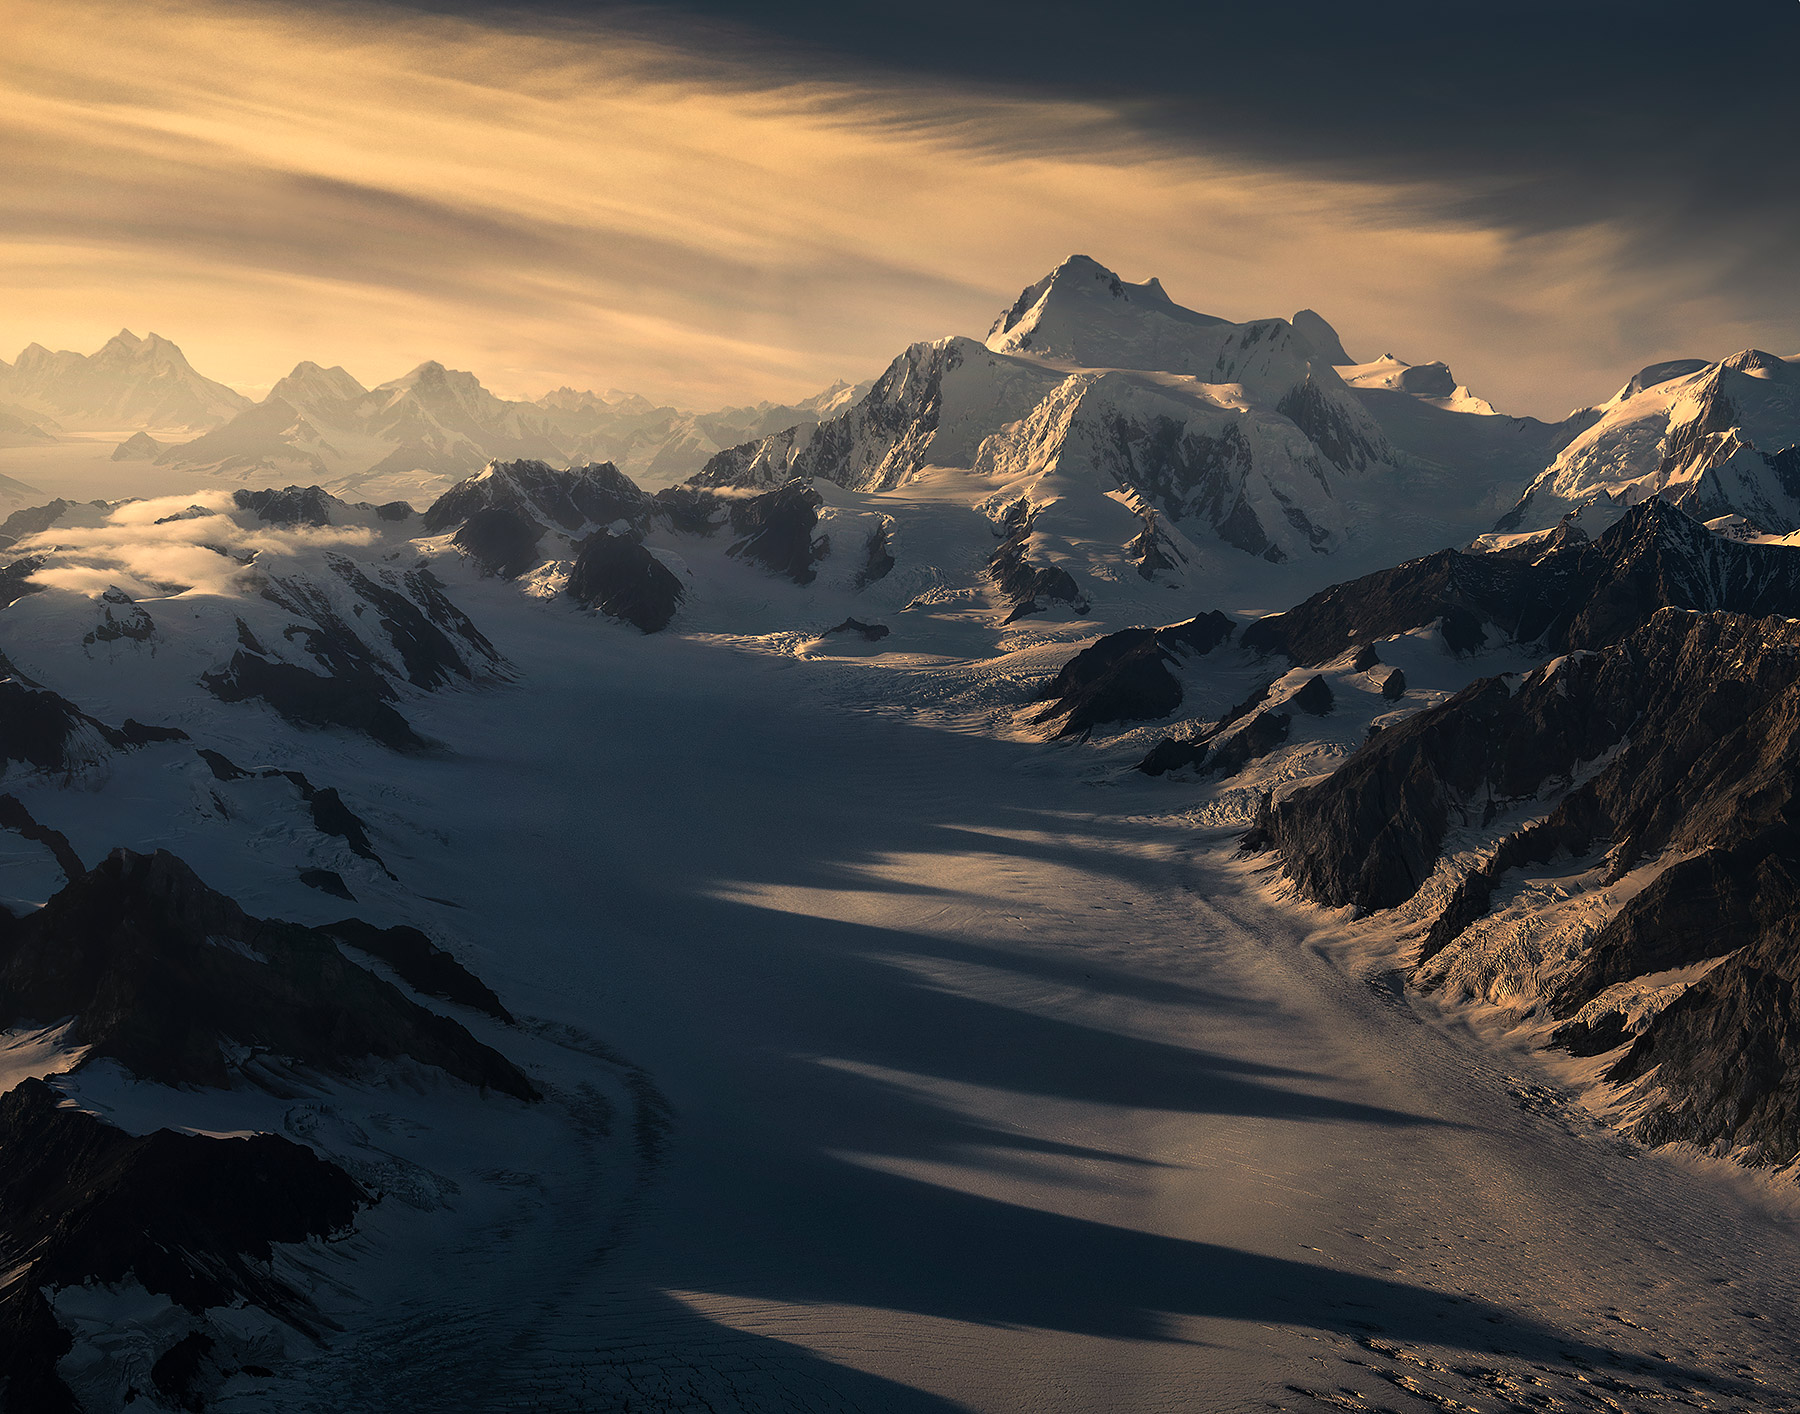 Wrangell, st Elias, glacier, sunset, shadows, peaks, mountains, Alaska, southeast, national park, kluane, Yukon, photo